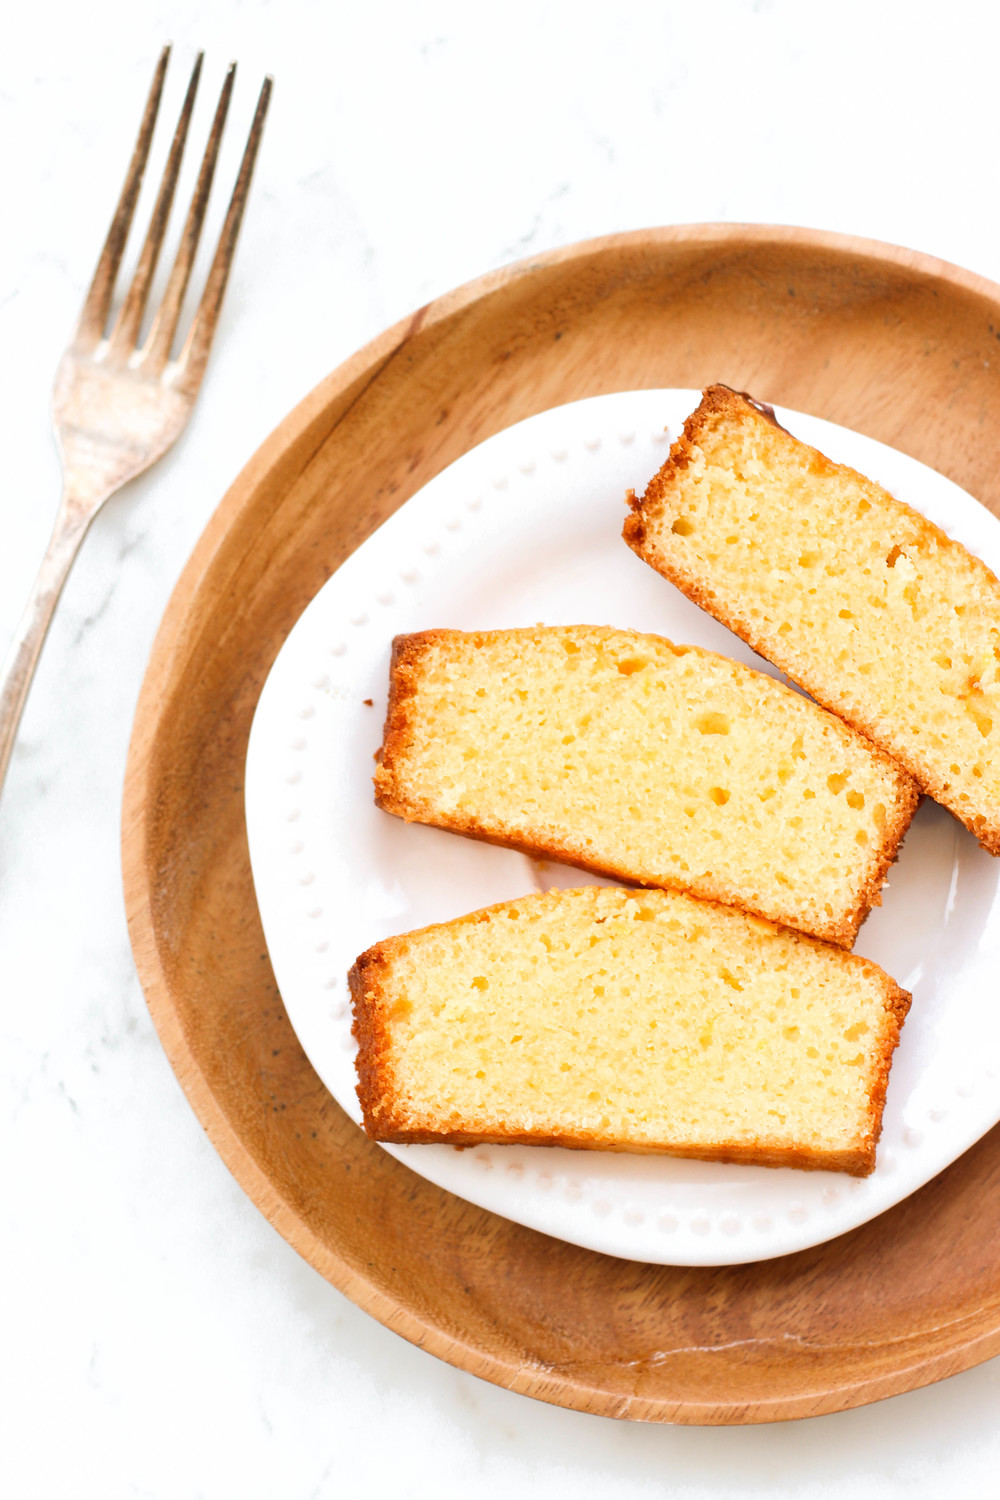 Gluten-free Lemon Yogurt Cake7.jpg